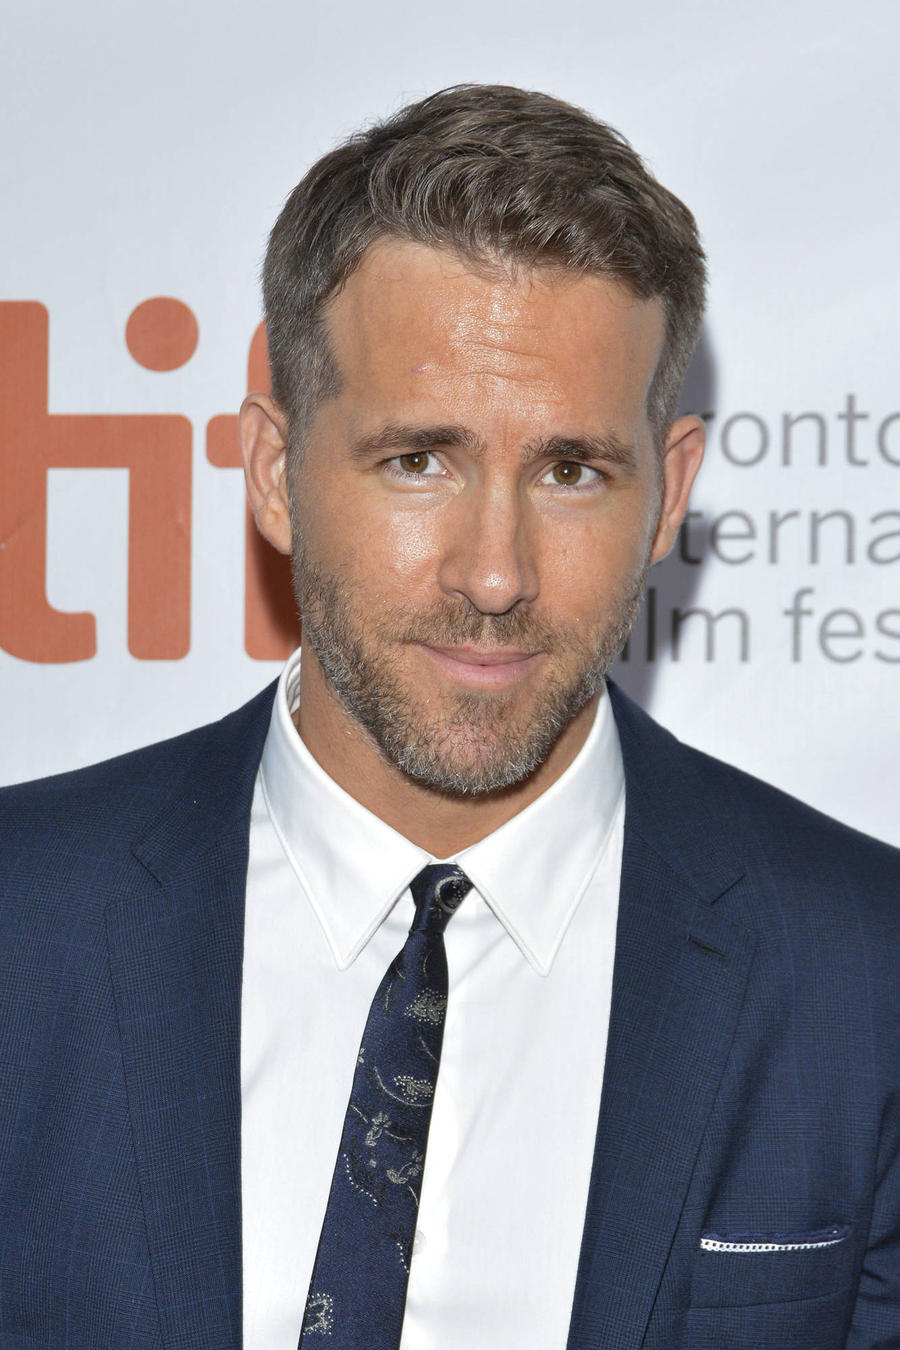 Ryan Reynolds Gifts Fan With Two Tickets To Deadpool Movie Premiere